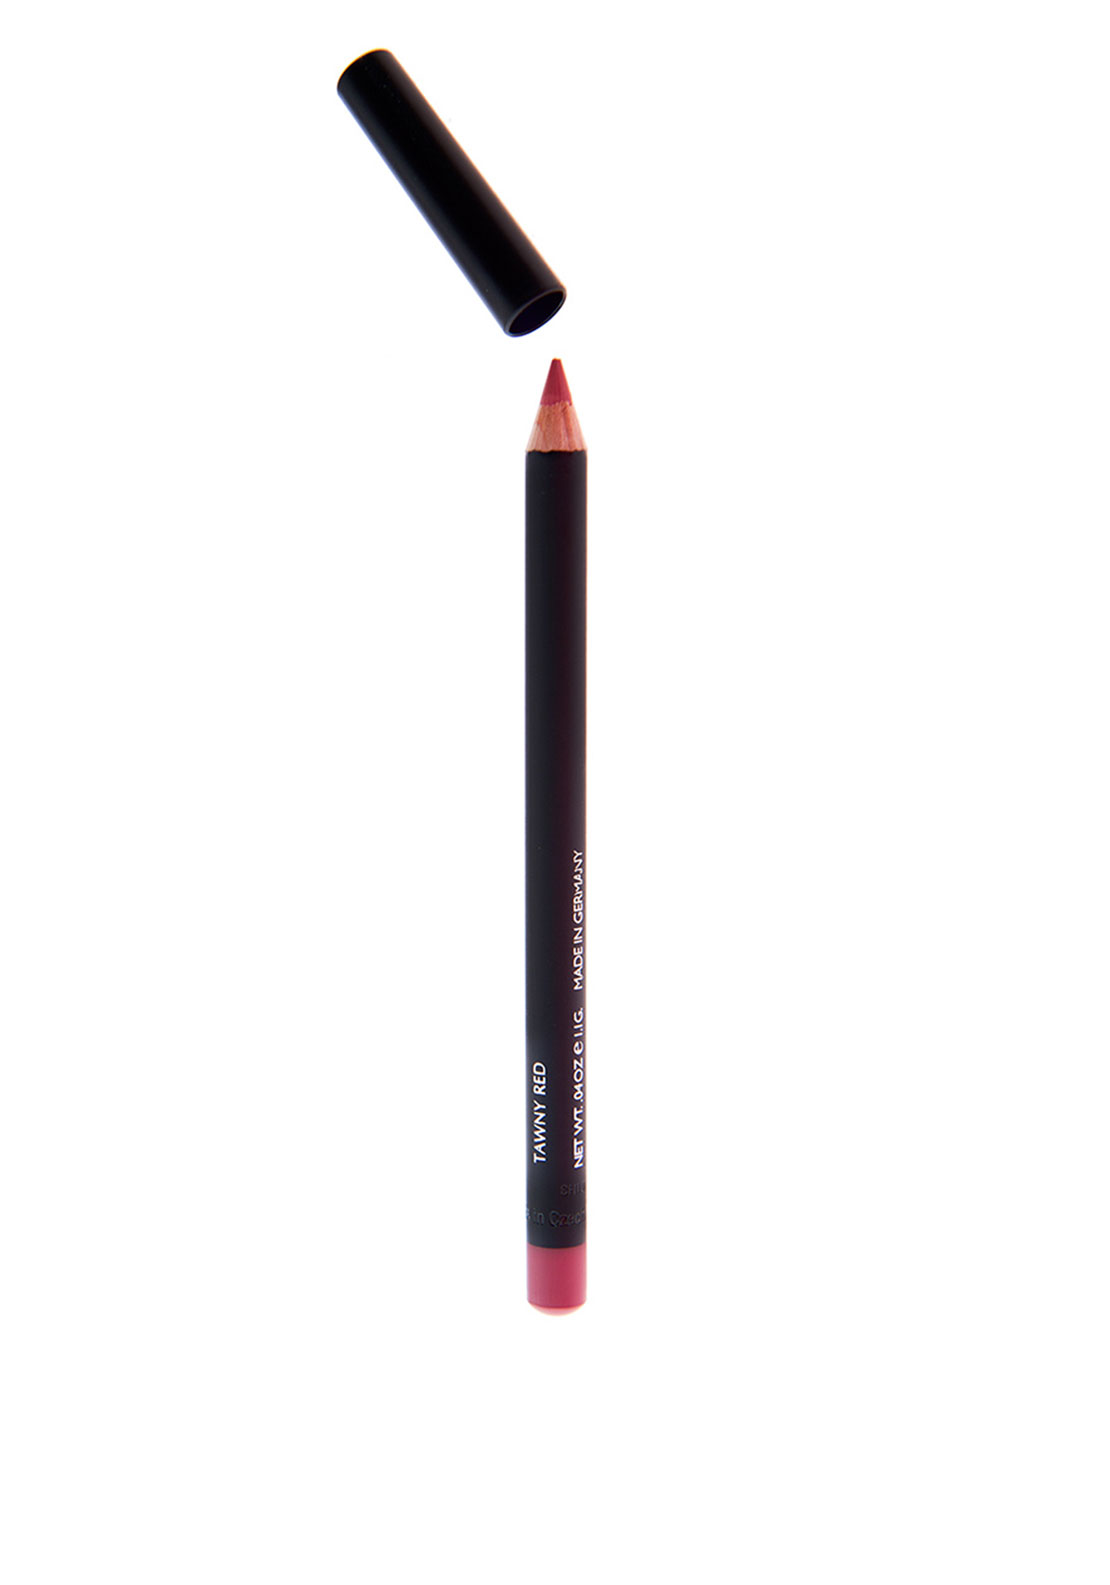 Susan McCann String of Diamonds by Lynda Strain Lip Pencil, Tawny Red